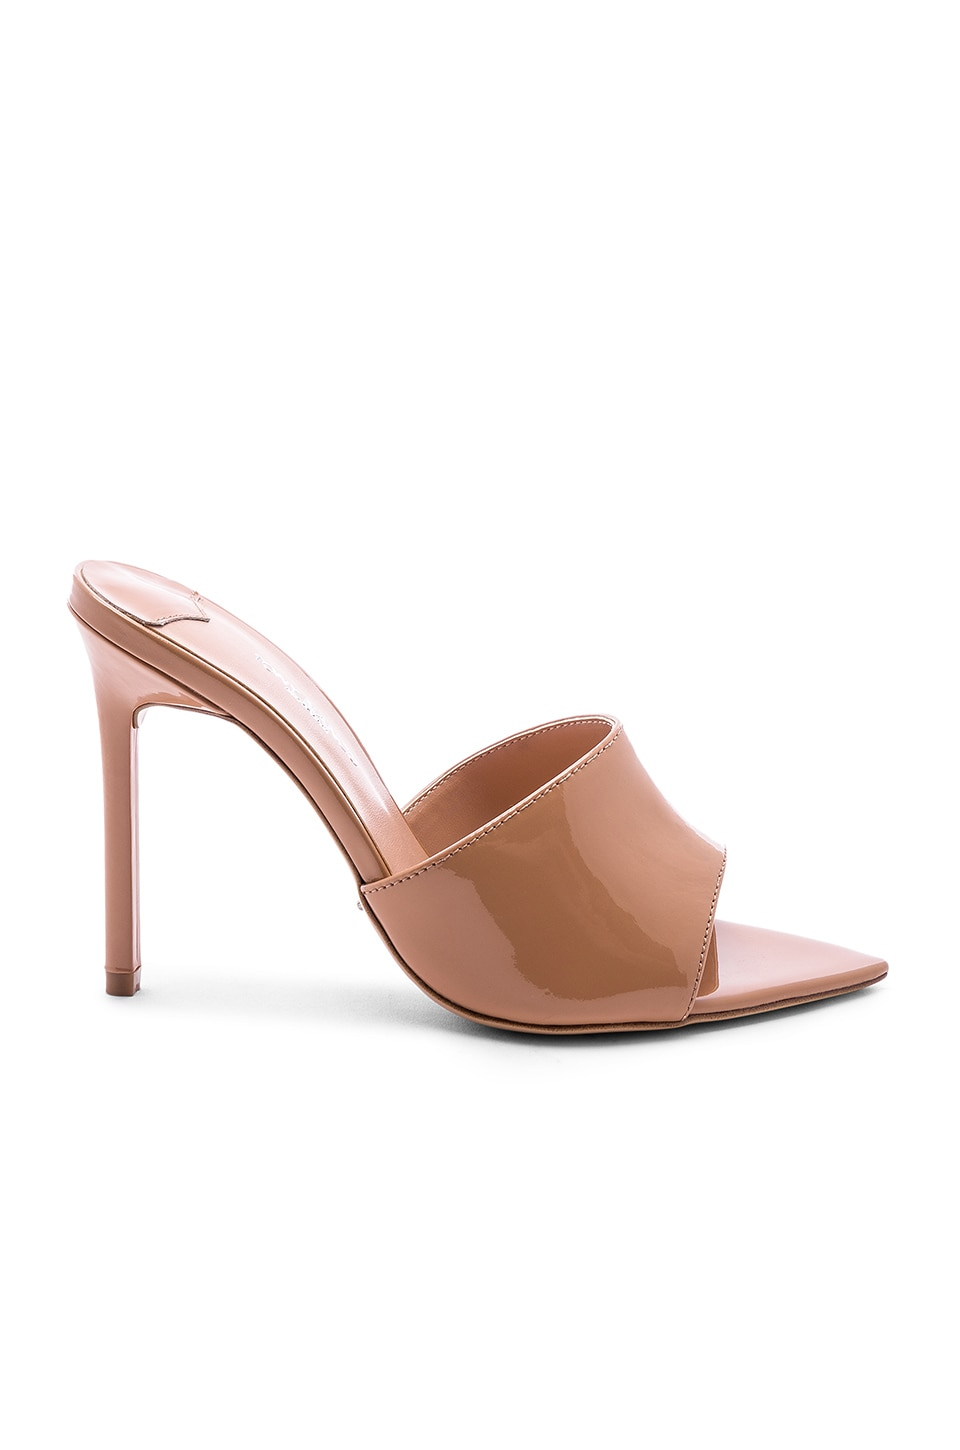 Tony Bianco Marley Mule in Nude Patent